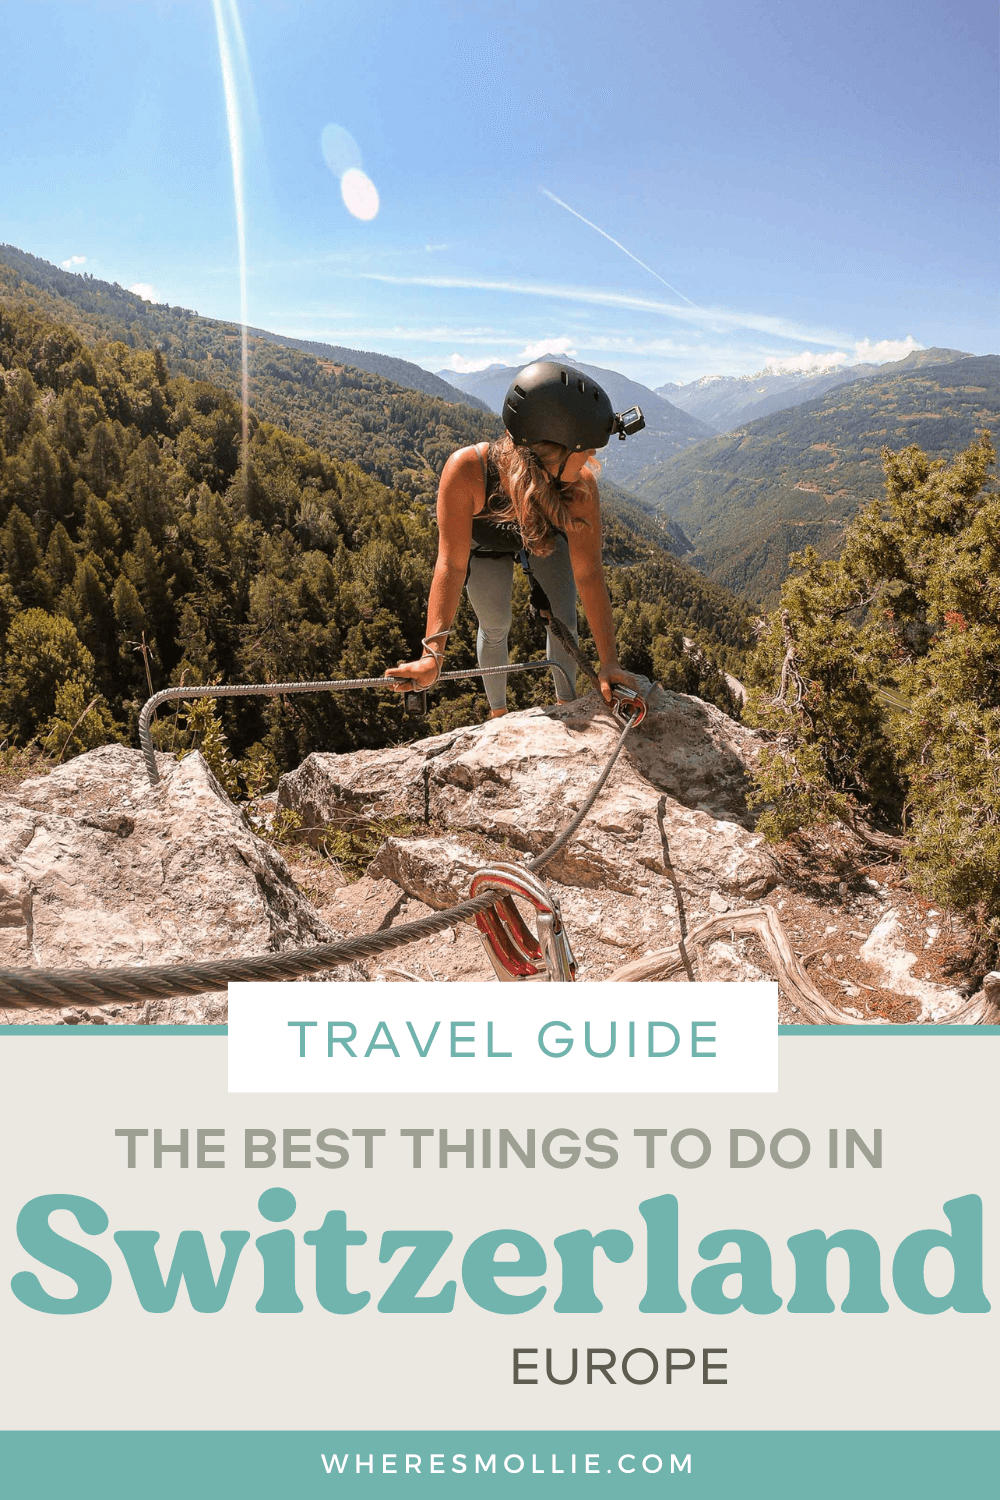 The best things to do in Switzerland